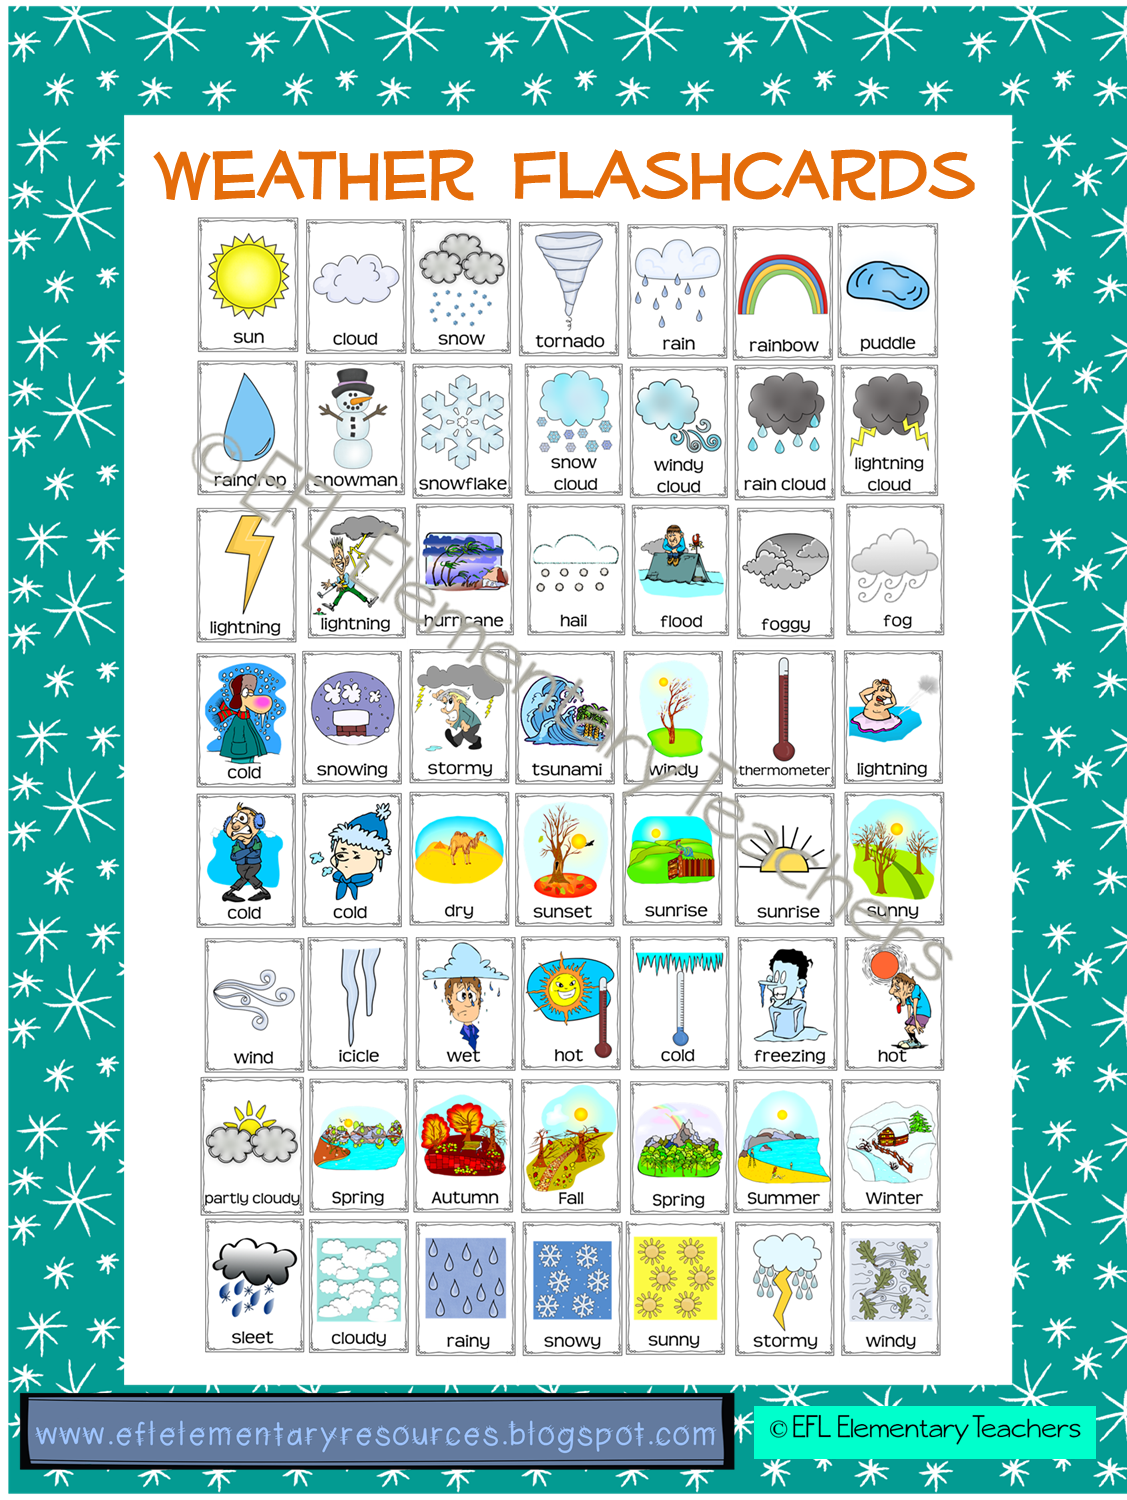 Gloves clipart snowy clothes. Efl elementary teachers weather